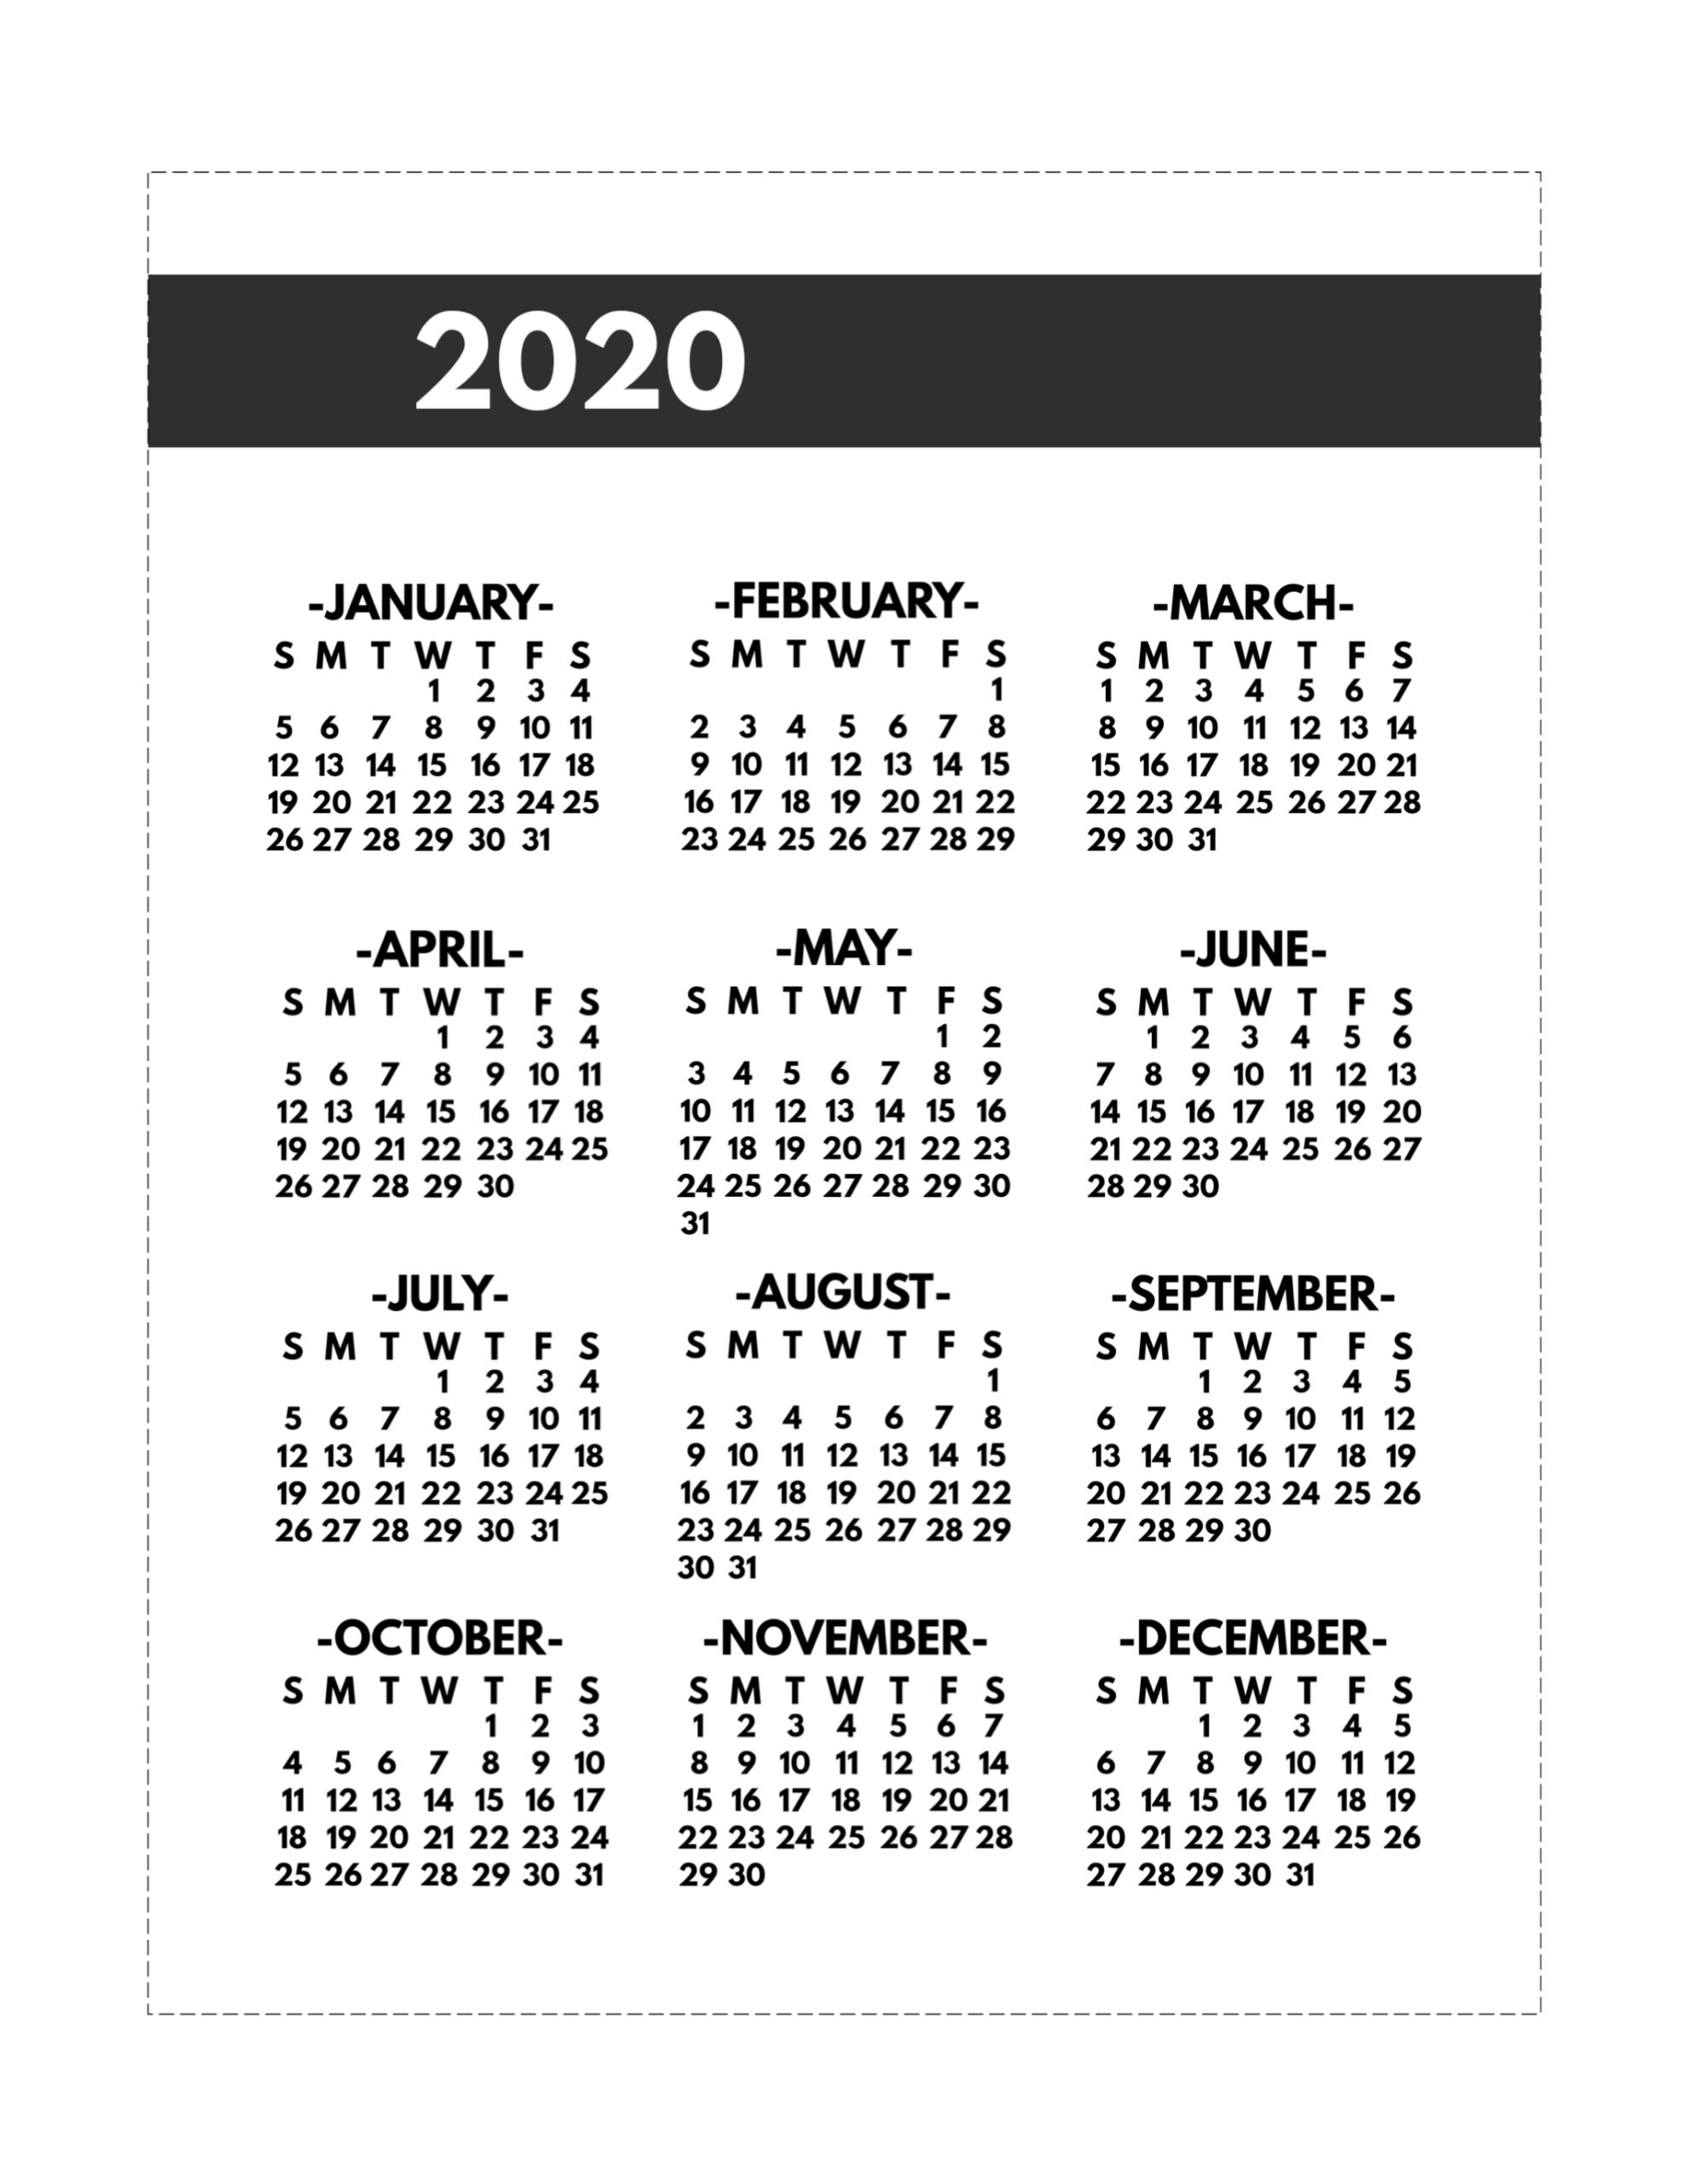 2020 Printable One Page Year At A Glance Calendar - Paper pertaining to Calendar At A Glance Printable 2020